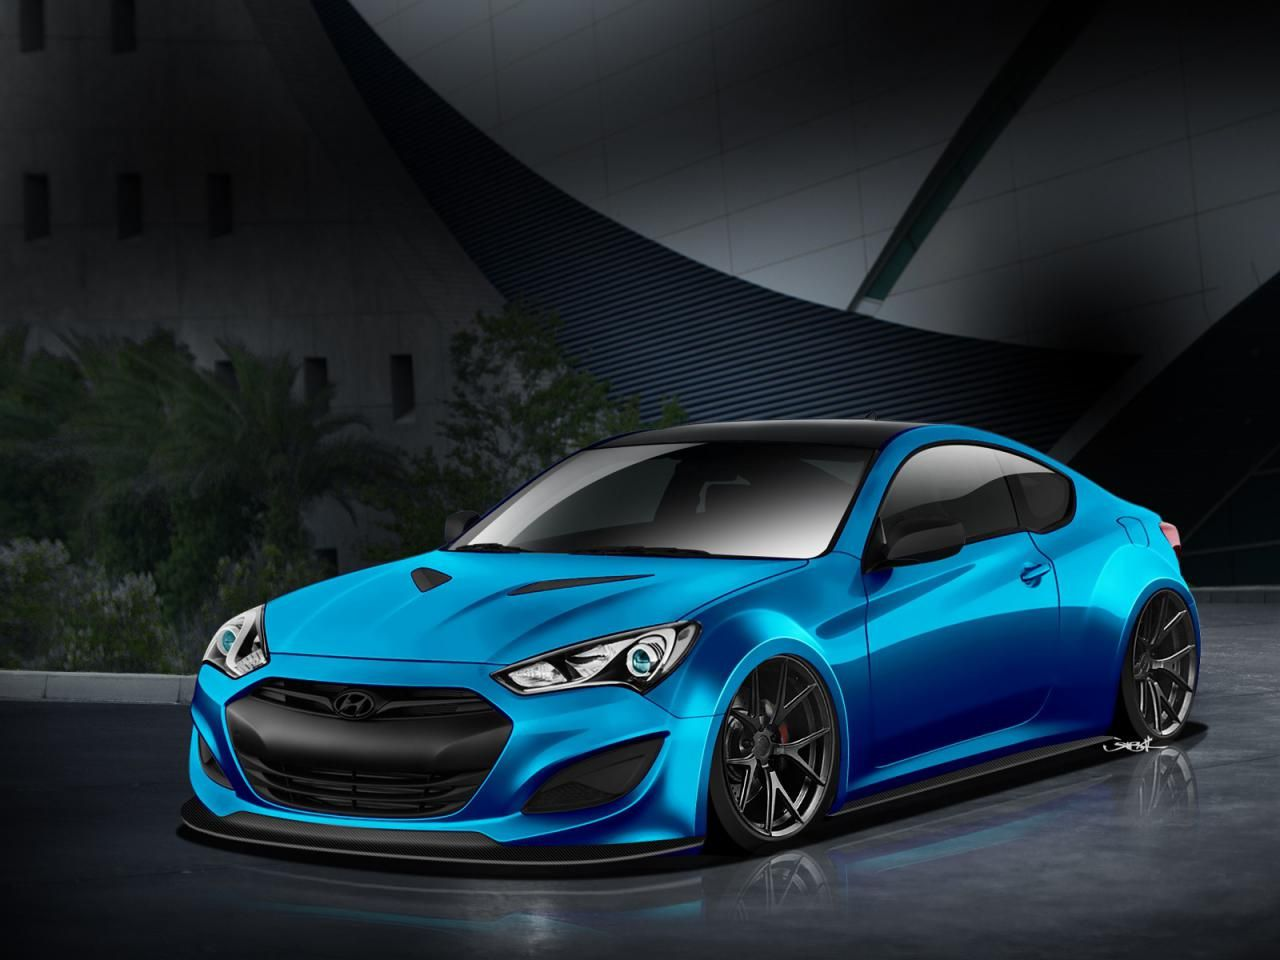 Pin By Off Lease Only On Hyundai Hyundai Genesis Coupe Hyundai Genesis 2013 Hyundai Genesis